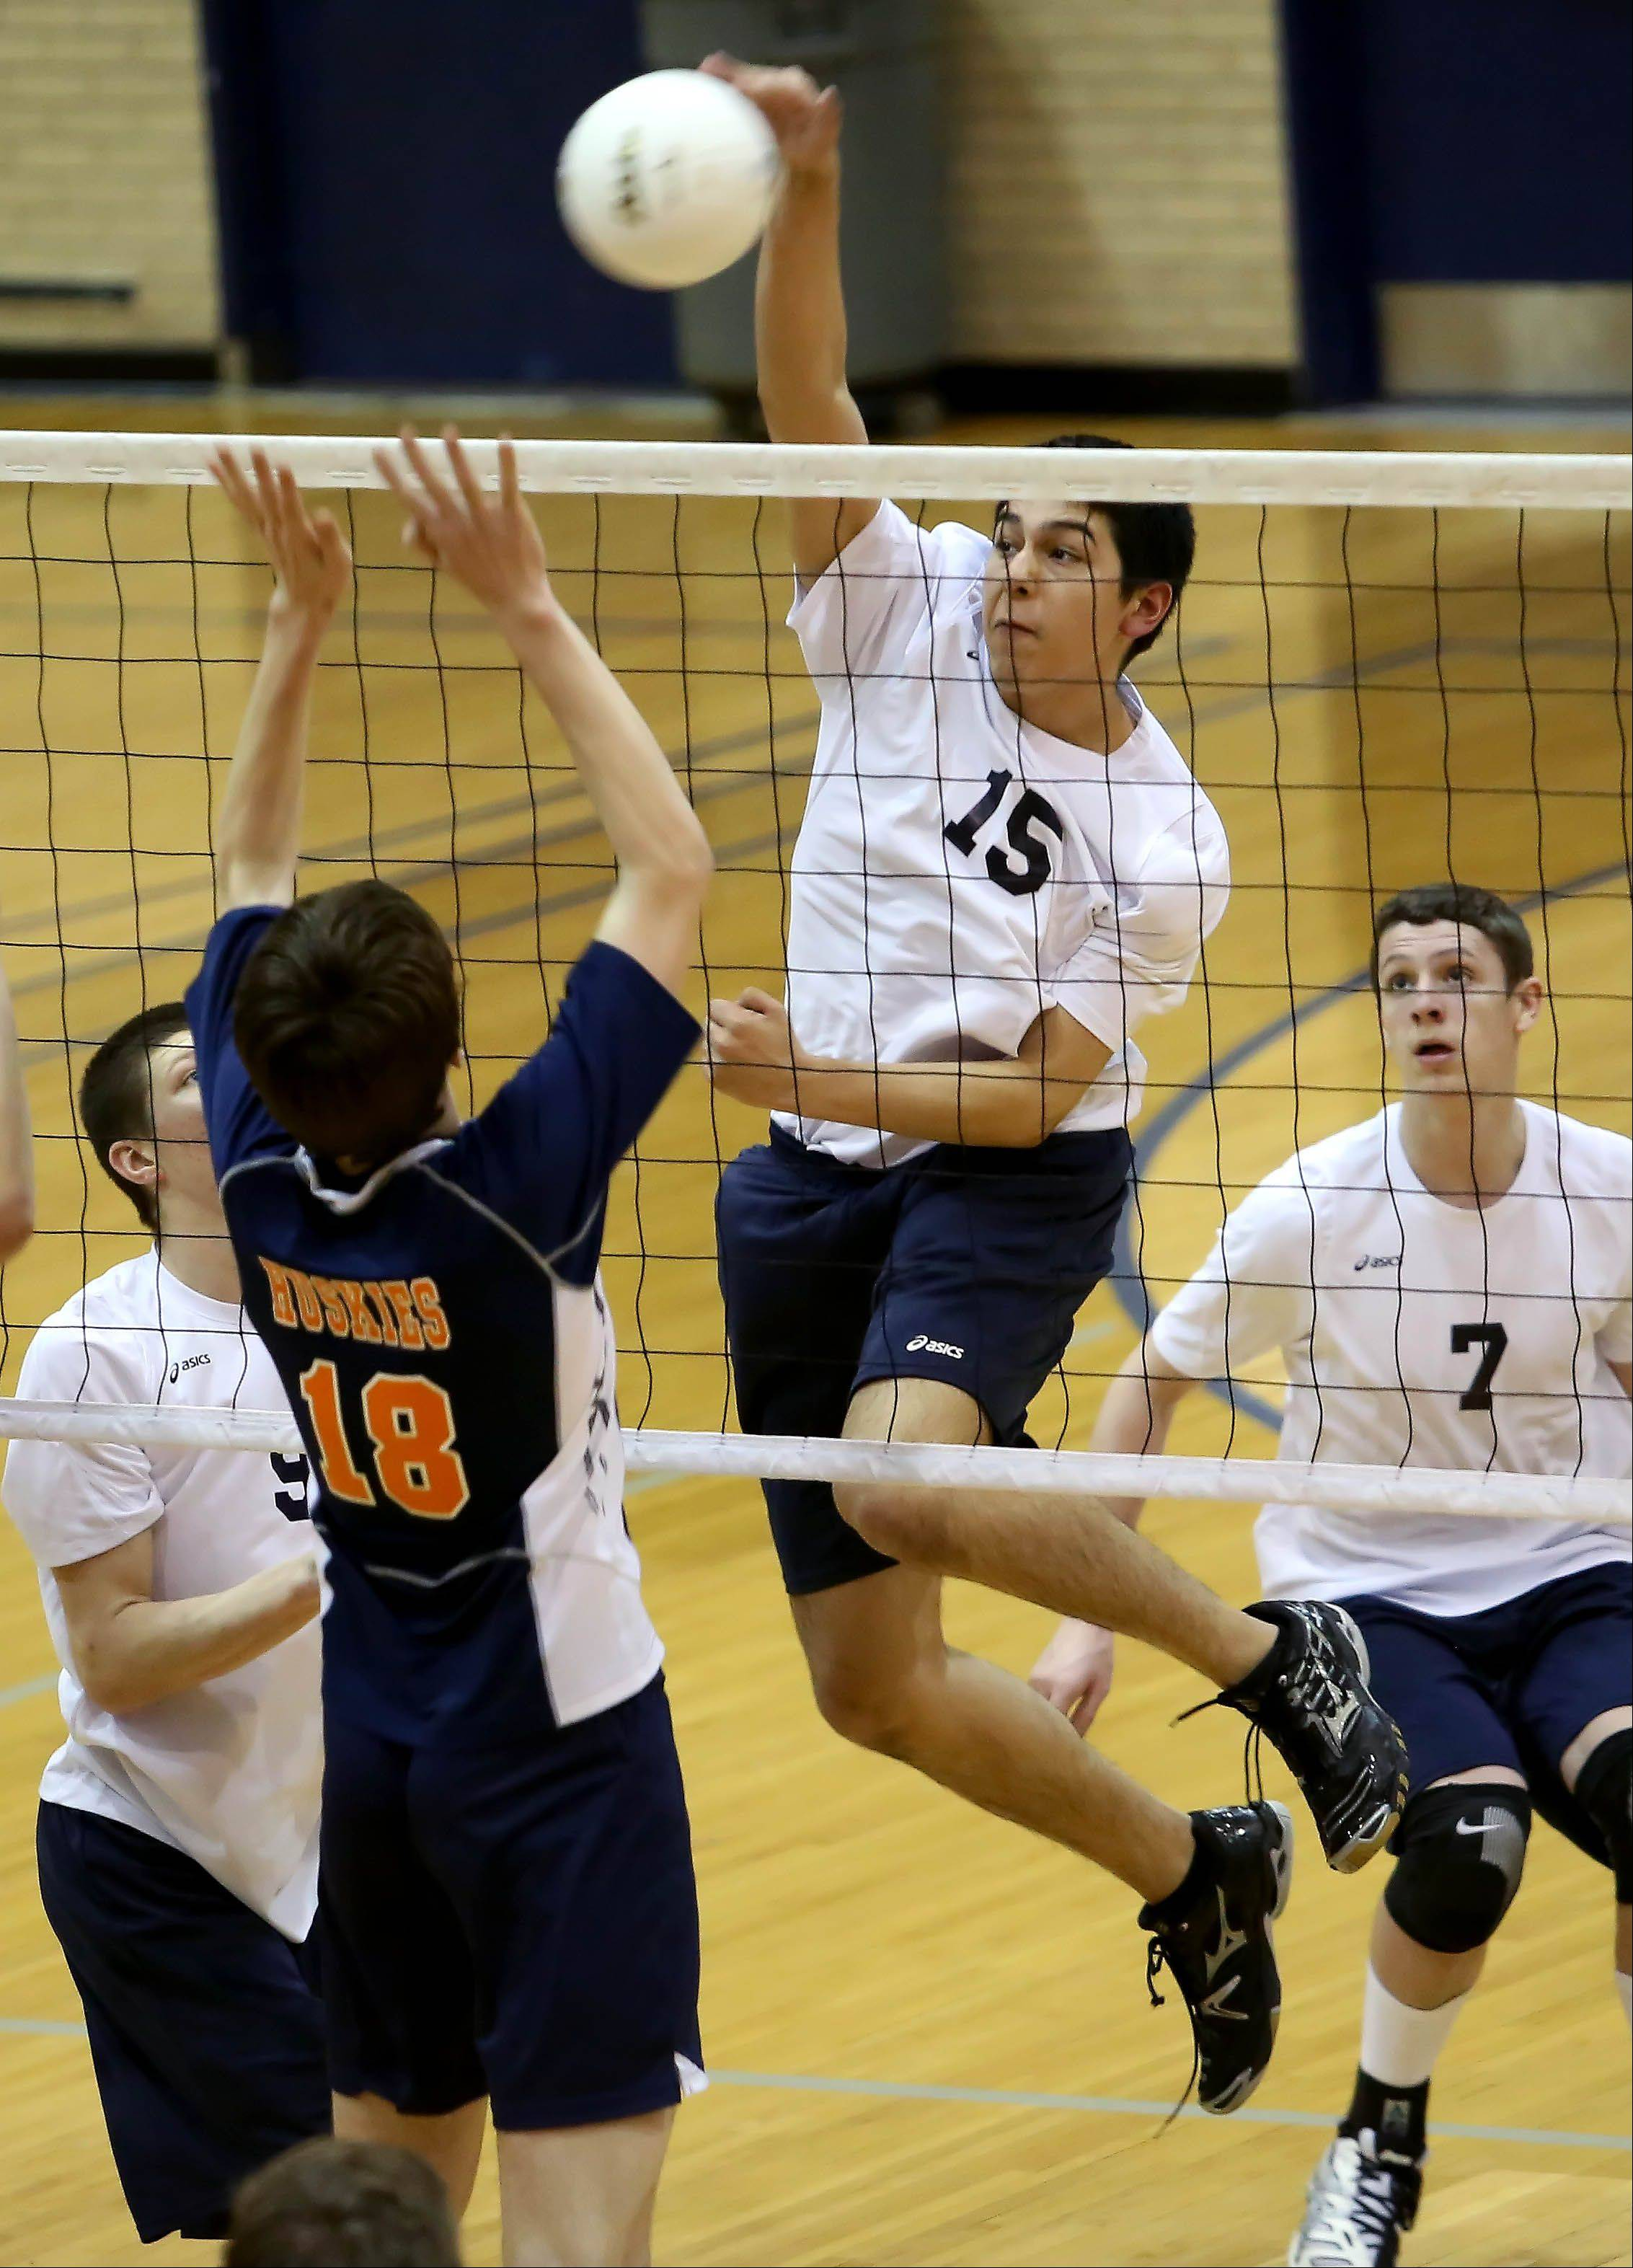 Addison Trail's Frank Gonzalez goes up for the spike against Oak Park River Forest during Monday's volleyball match in Addison.